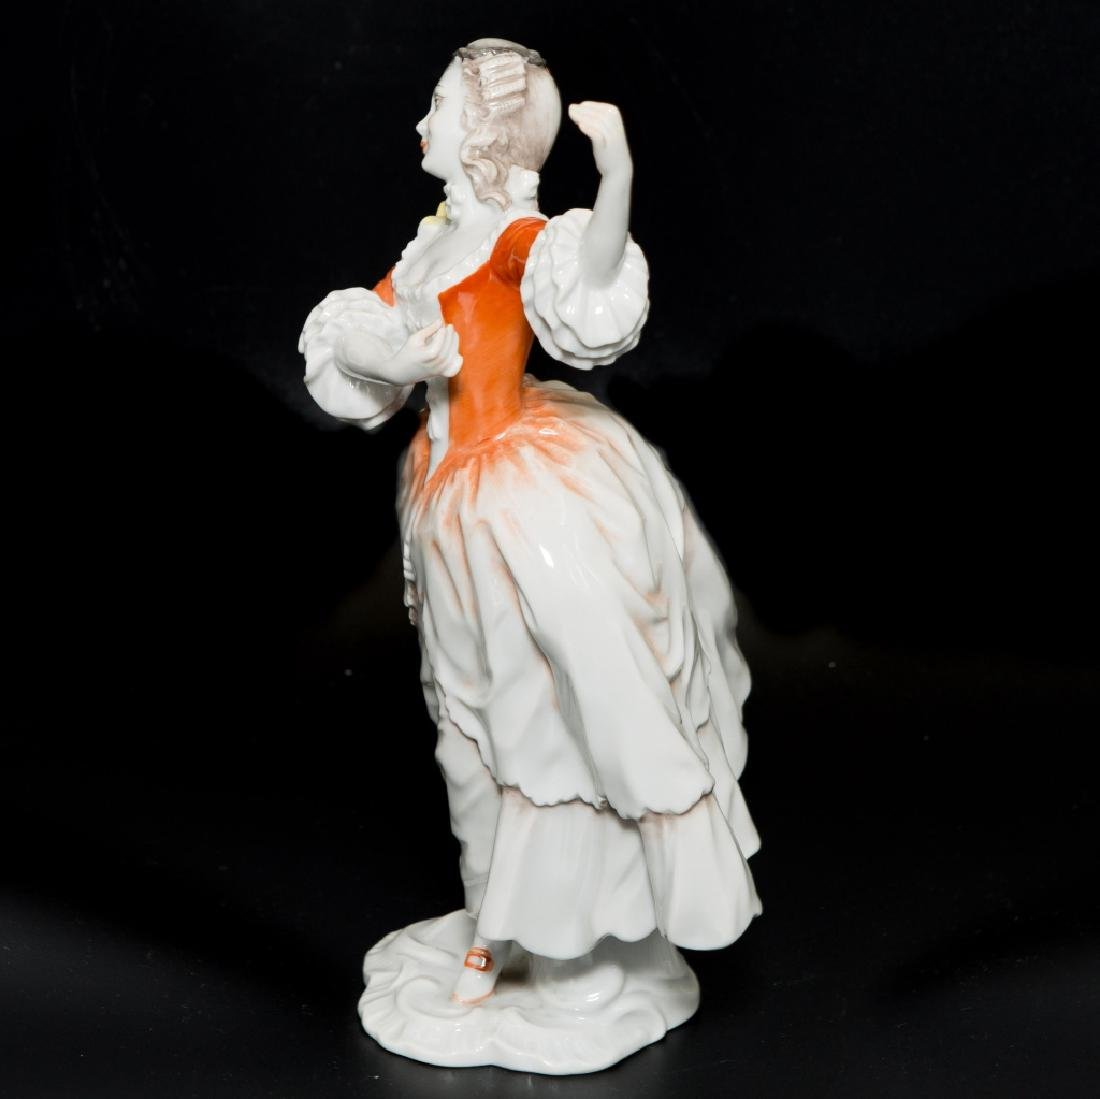 Rosenthal Rococo Girl Dancing Orange White Dress - 2